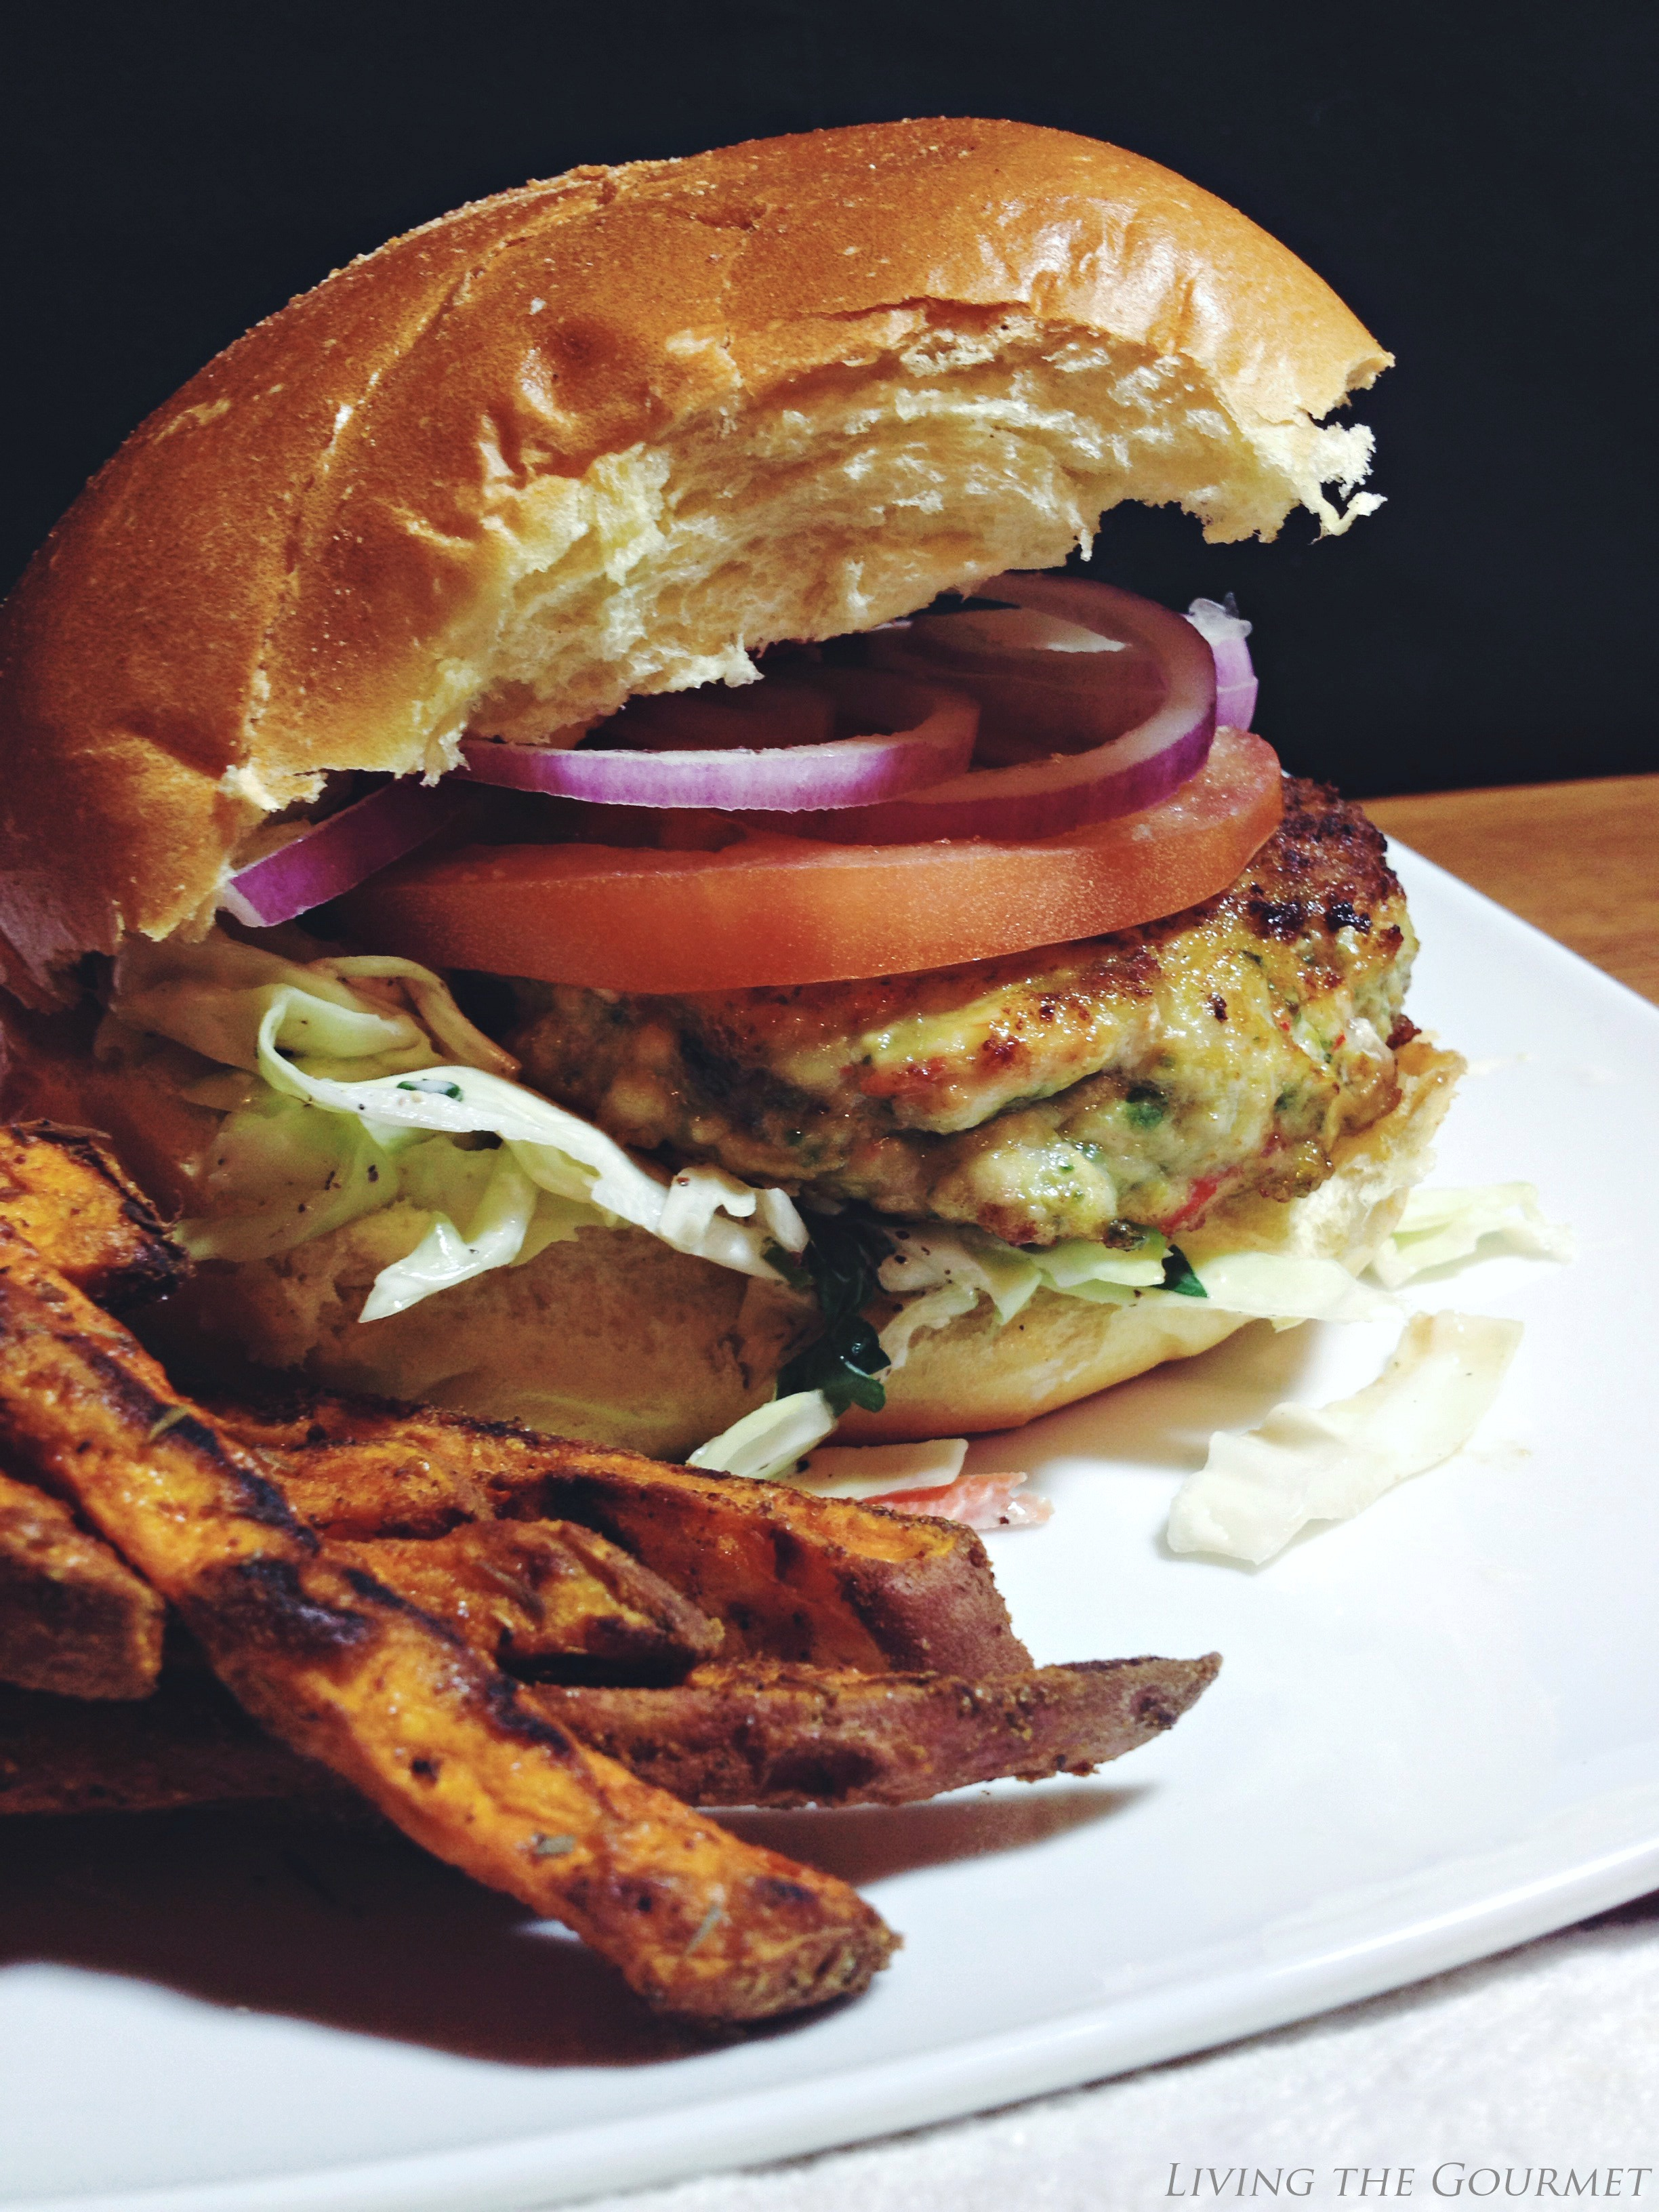 Living the Gourmet: Greek Style Chicken Burgers with Fresh Slaw and Sweet Potato Fries